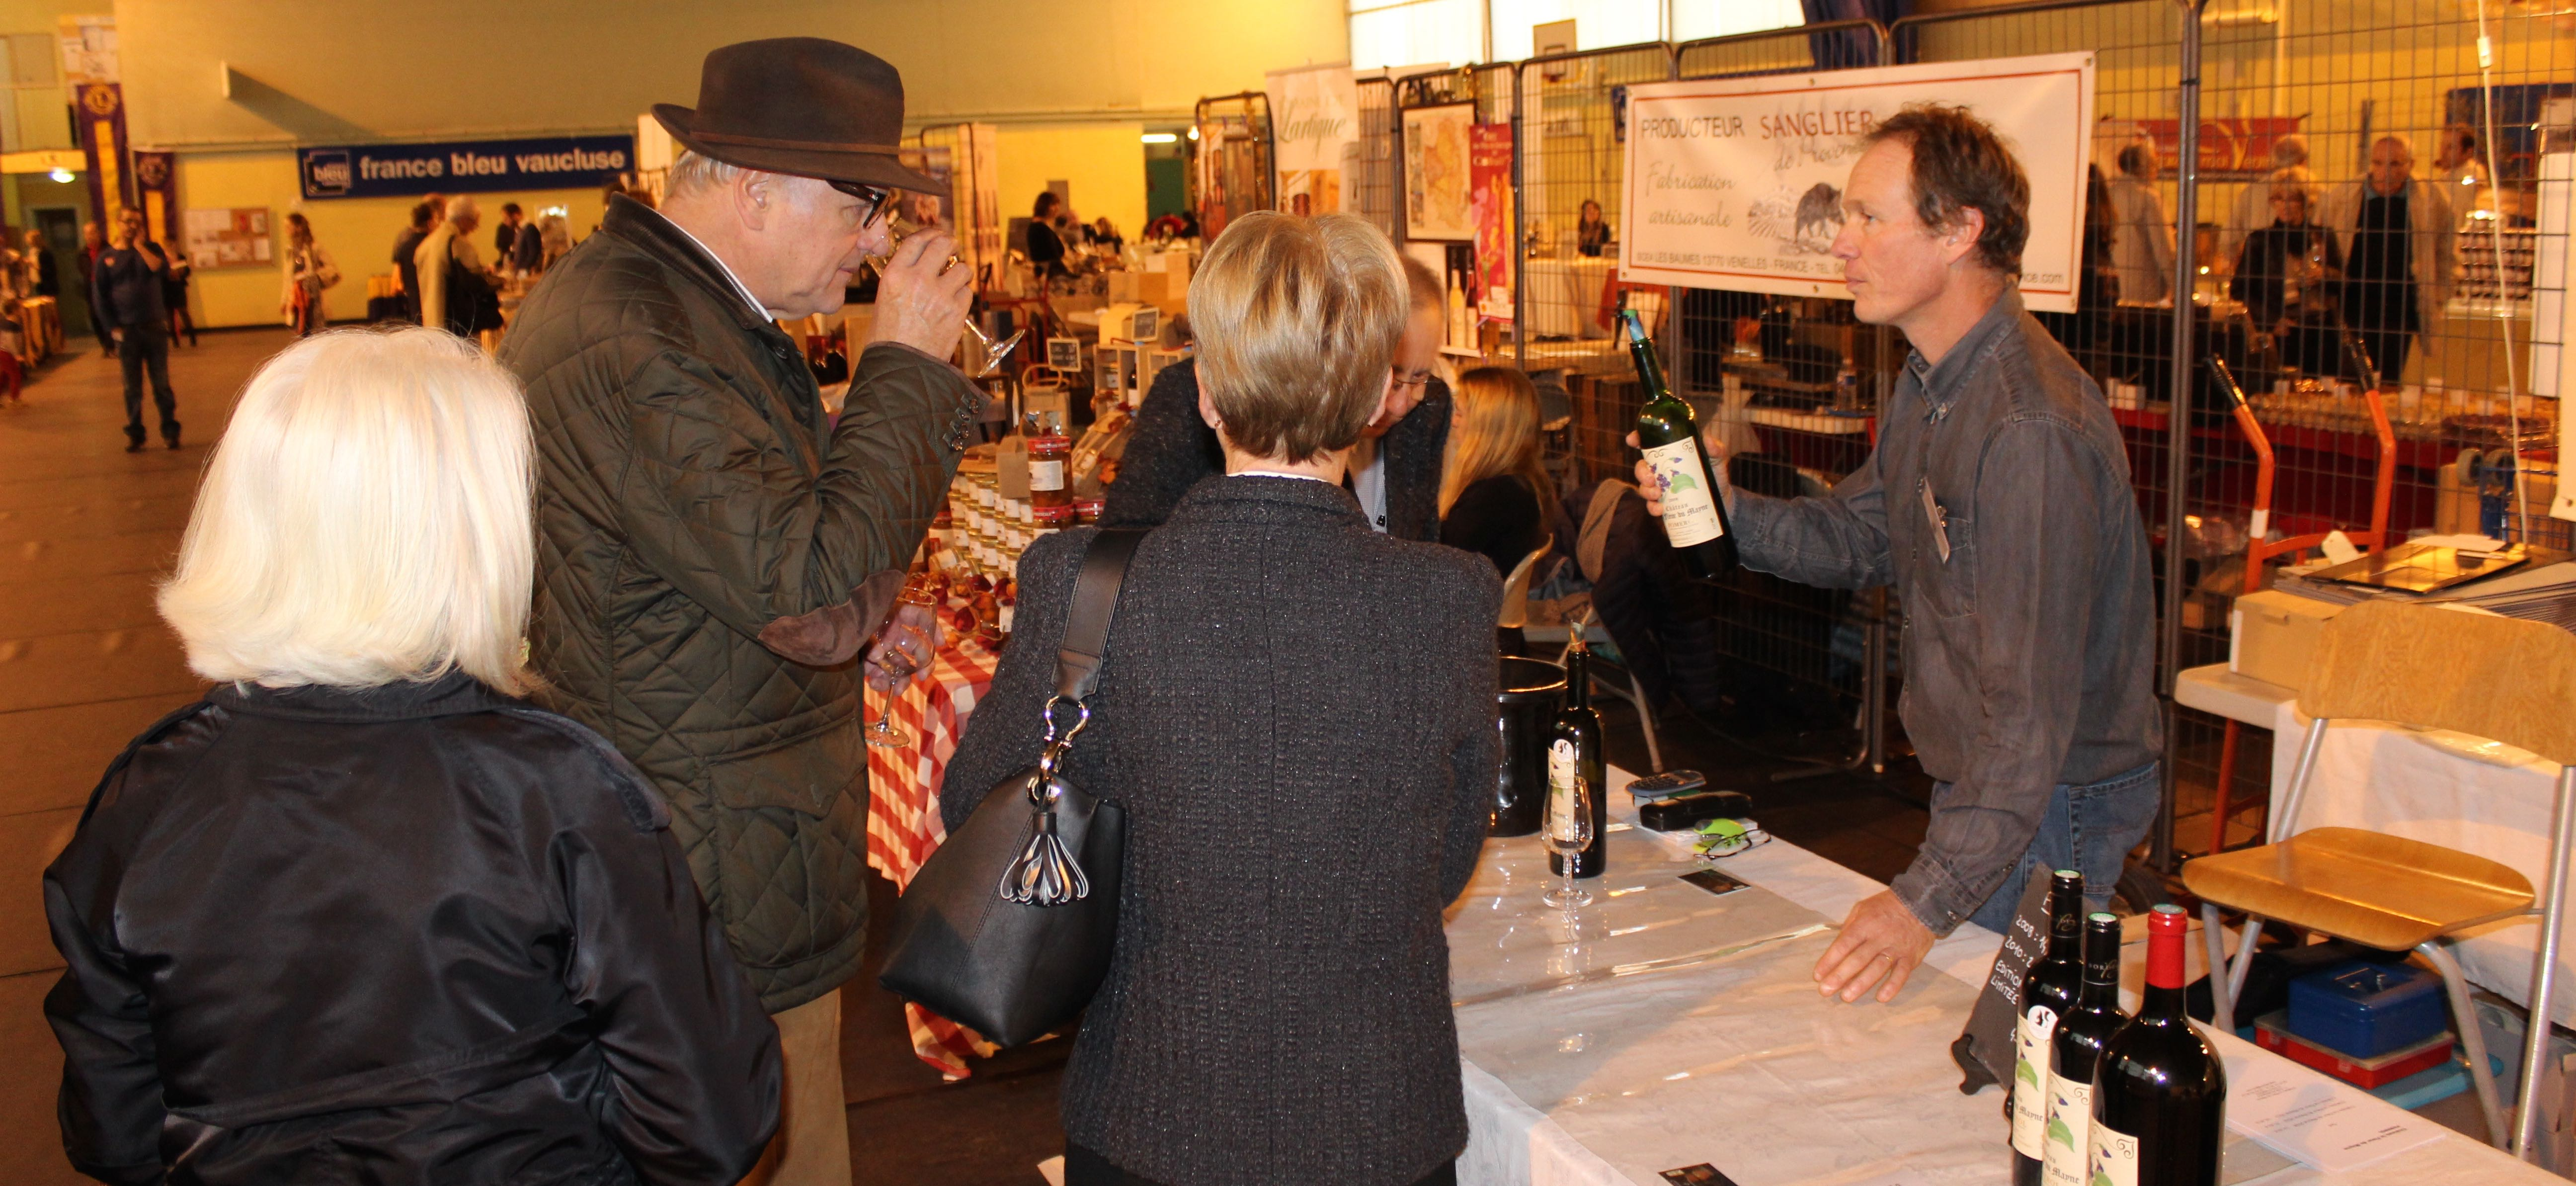 Photo of VILLENEUVE En images : le 1er Salon des Vins et des Gourmets bat son plein